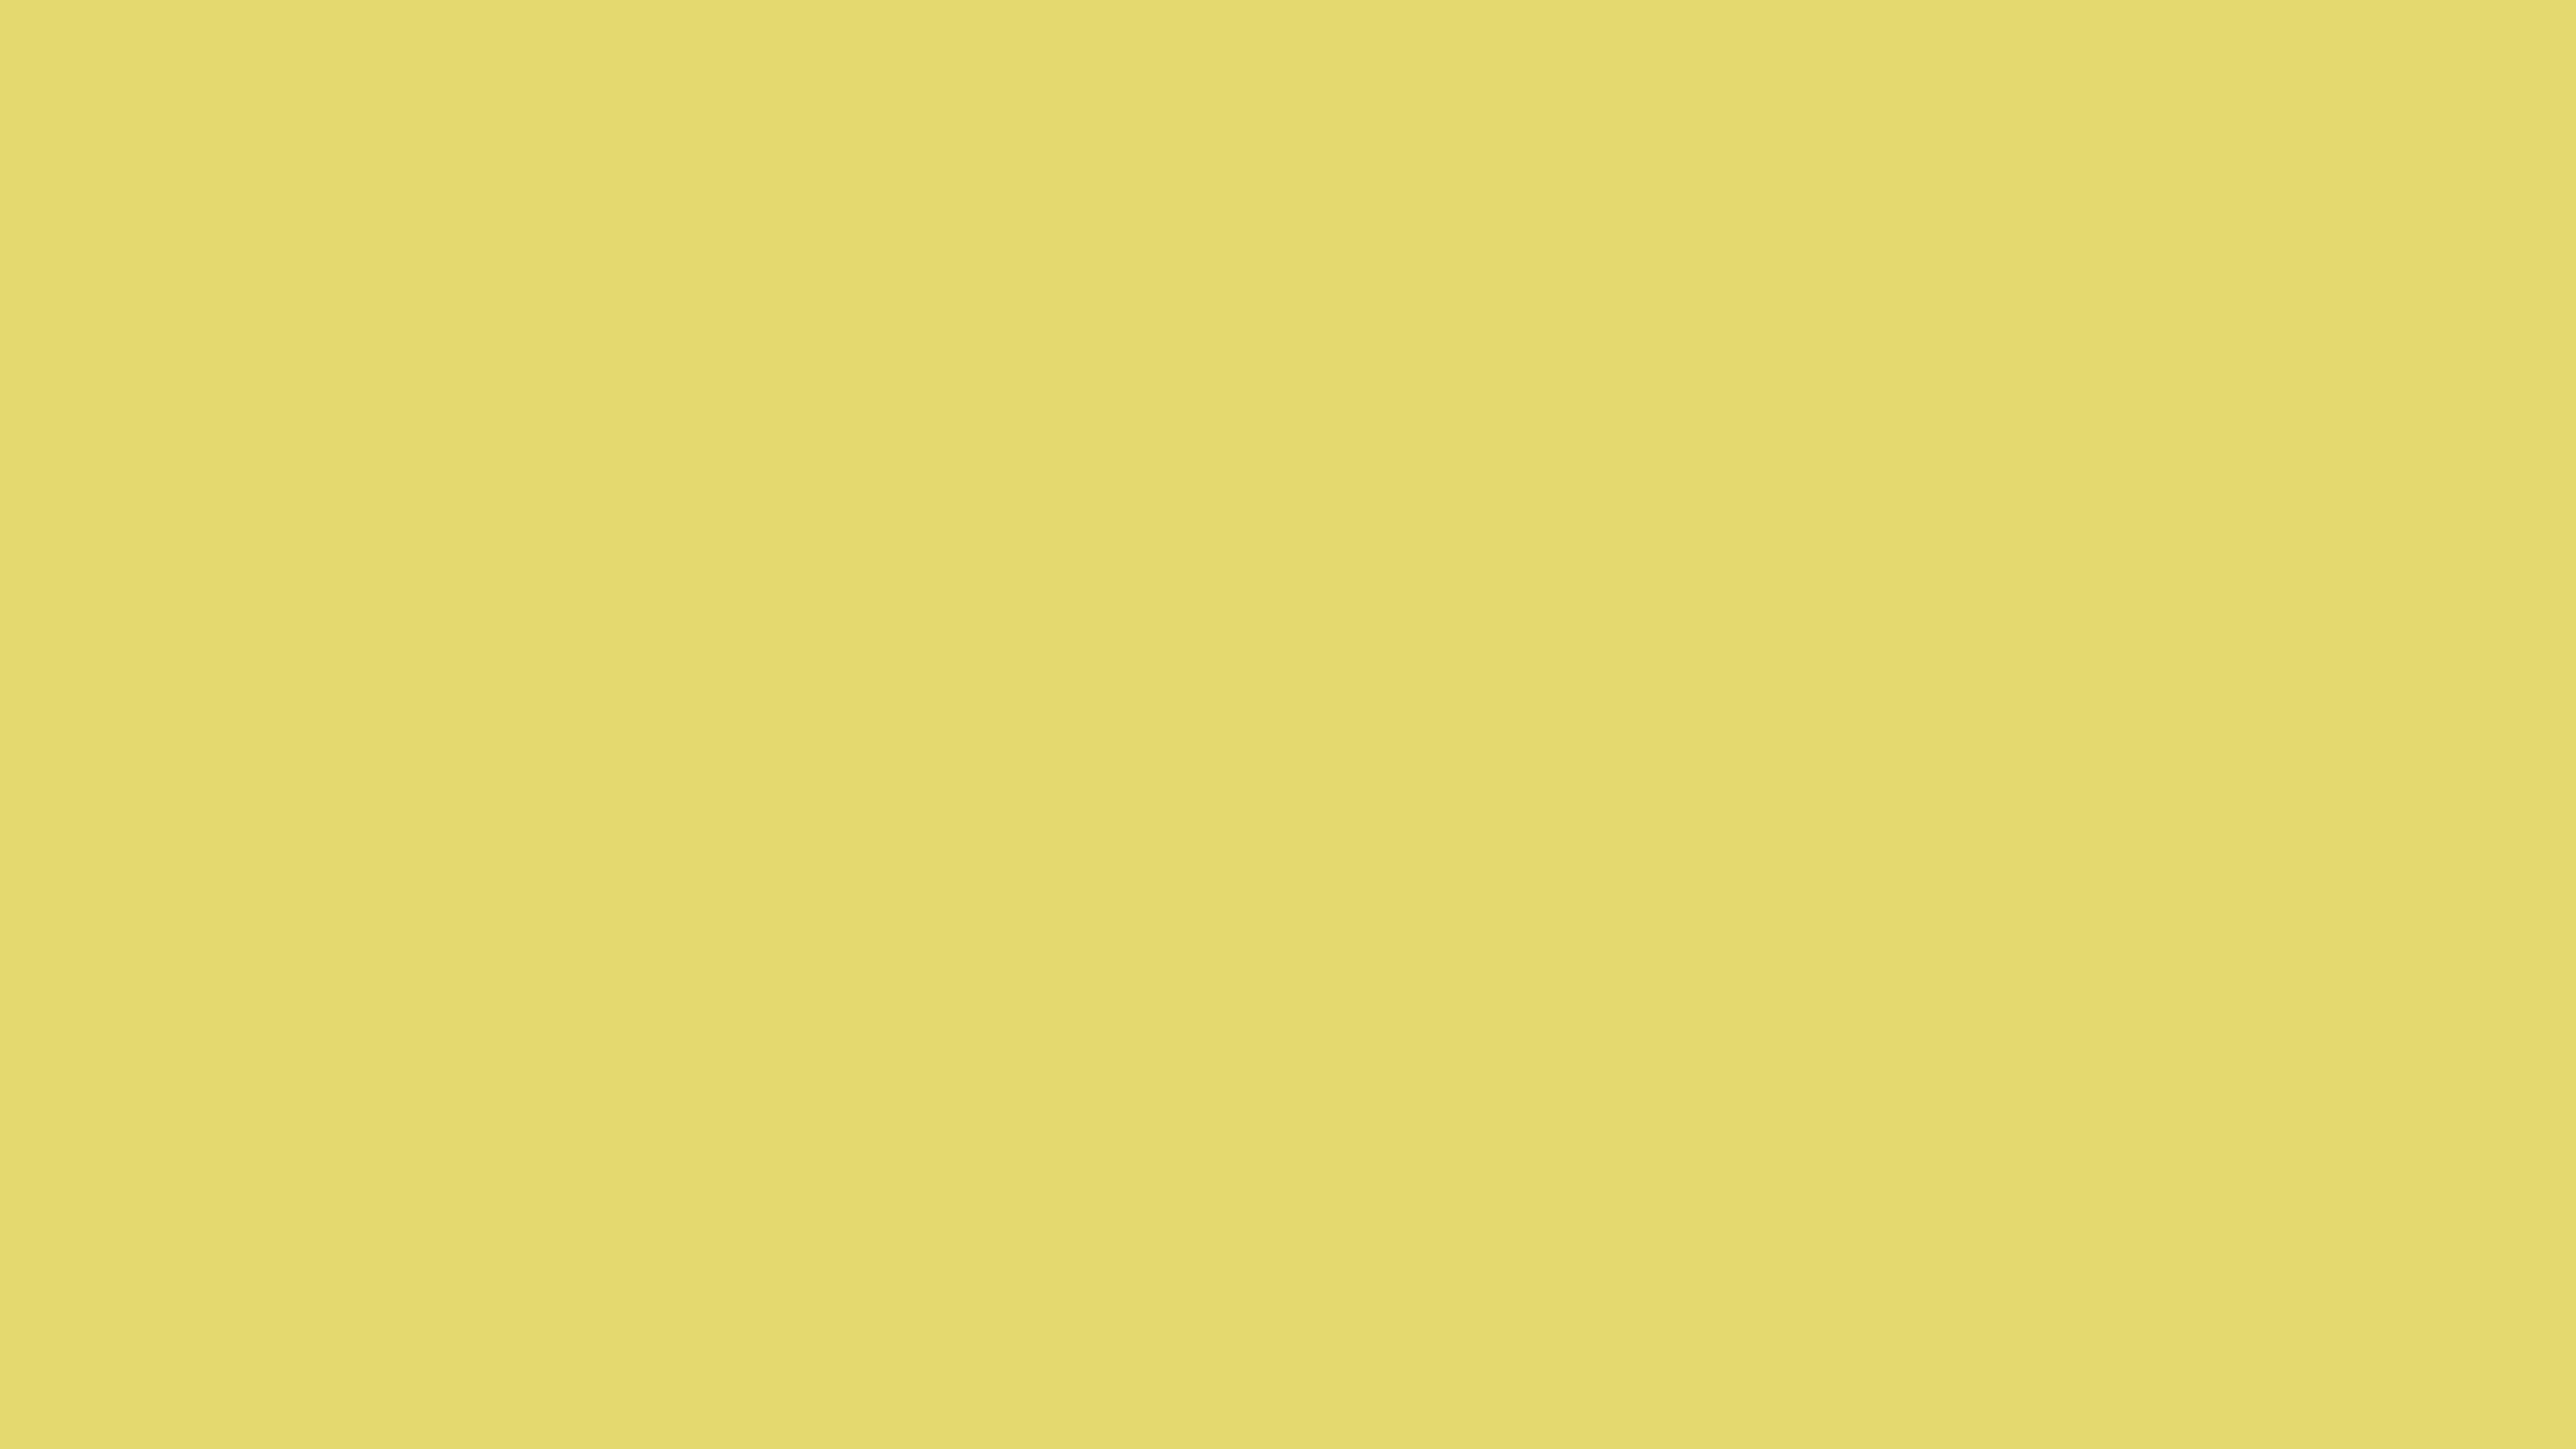 7680x4320 Straw Solid Color Background